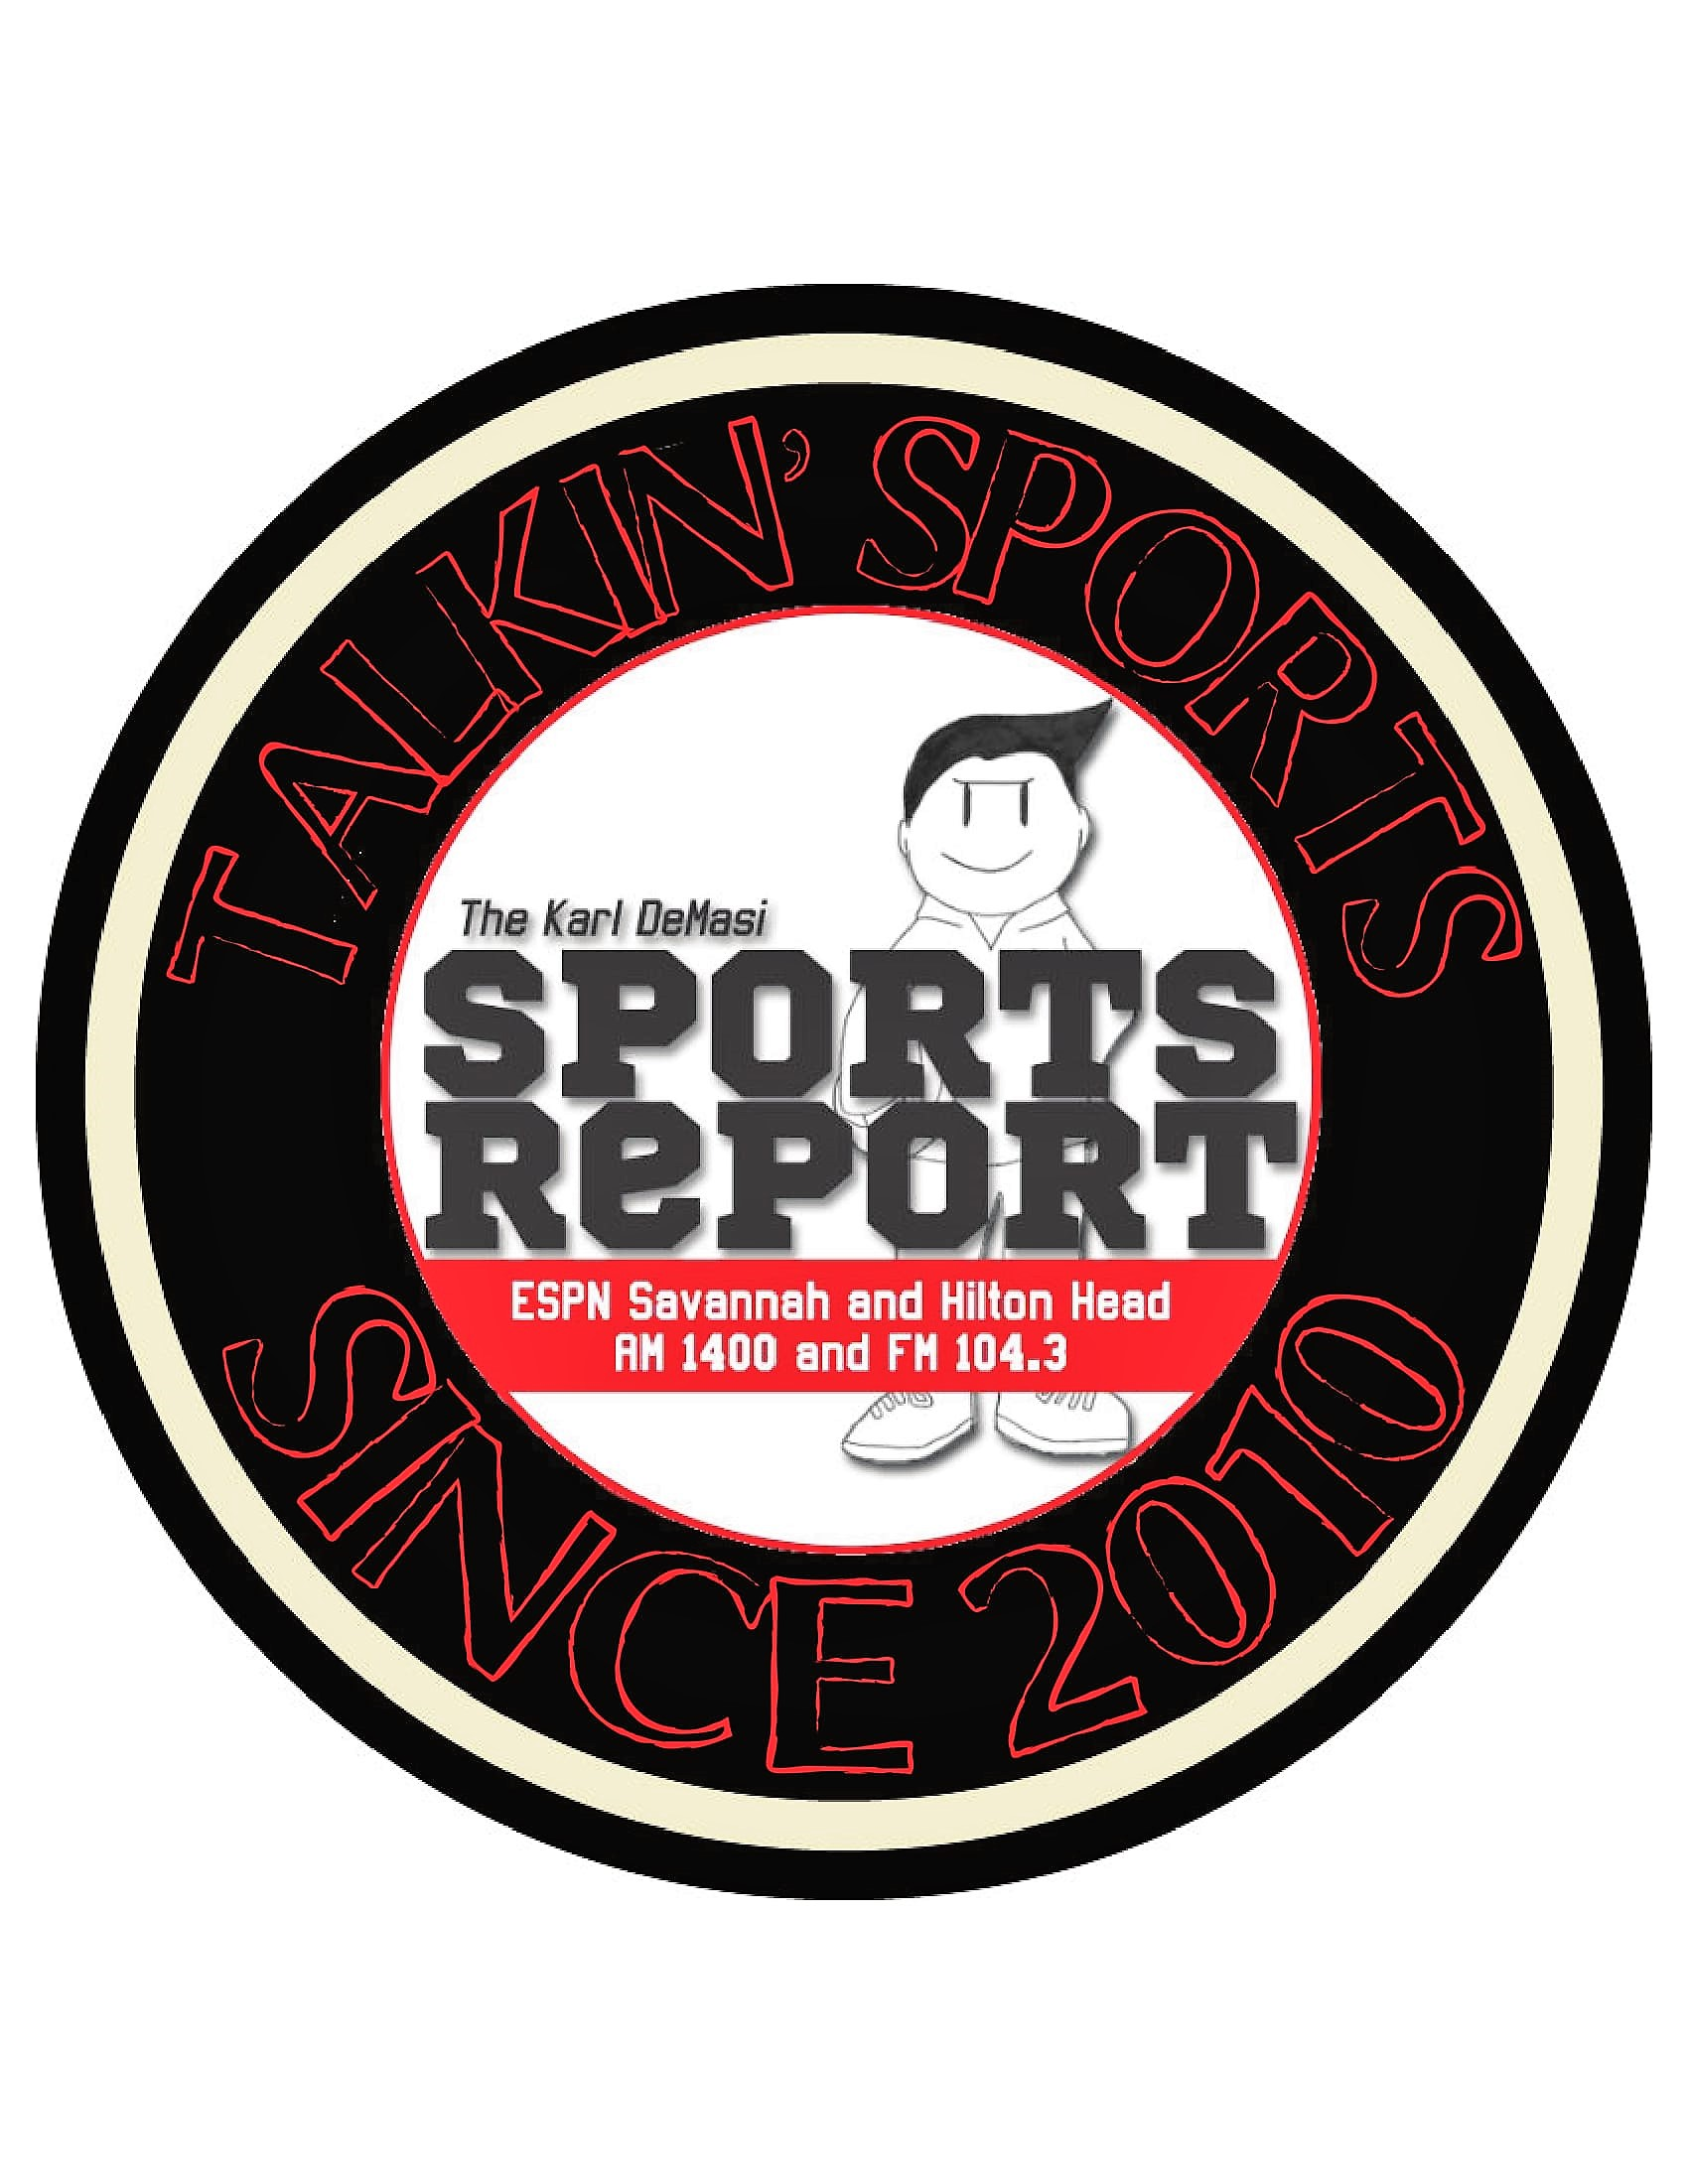 The Karl DeMasi Sports Report